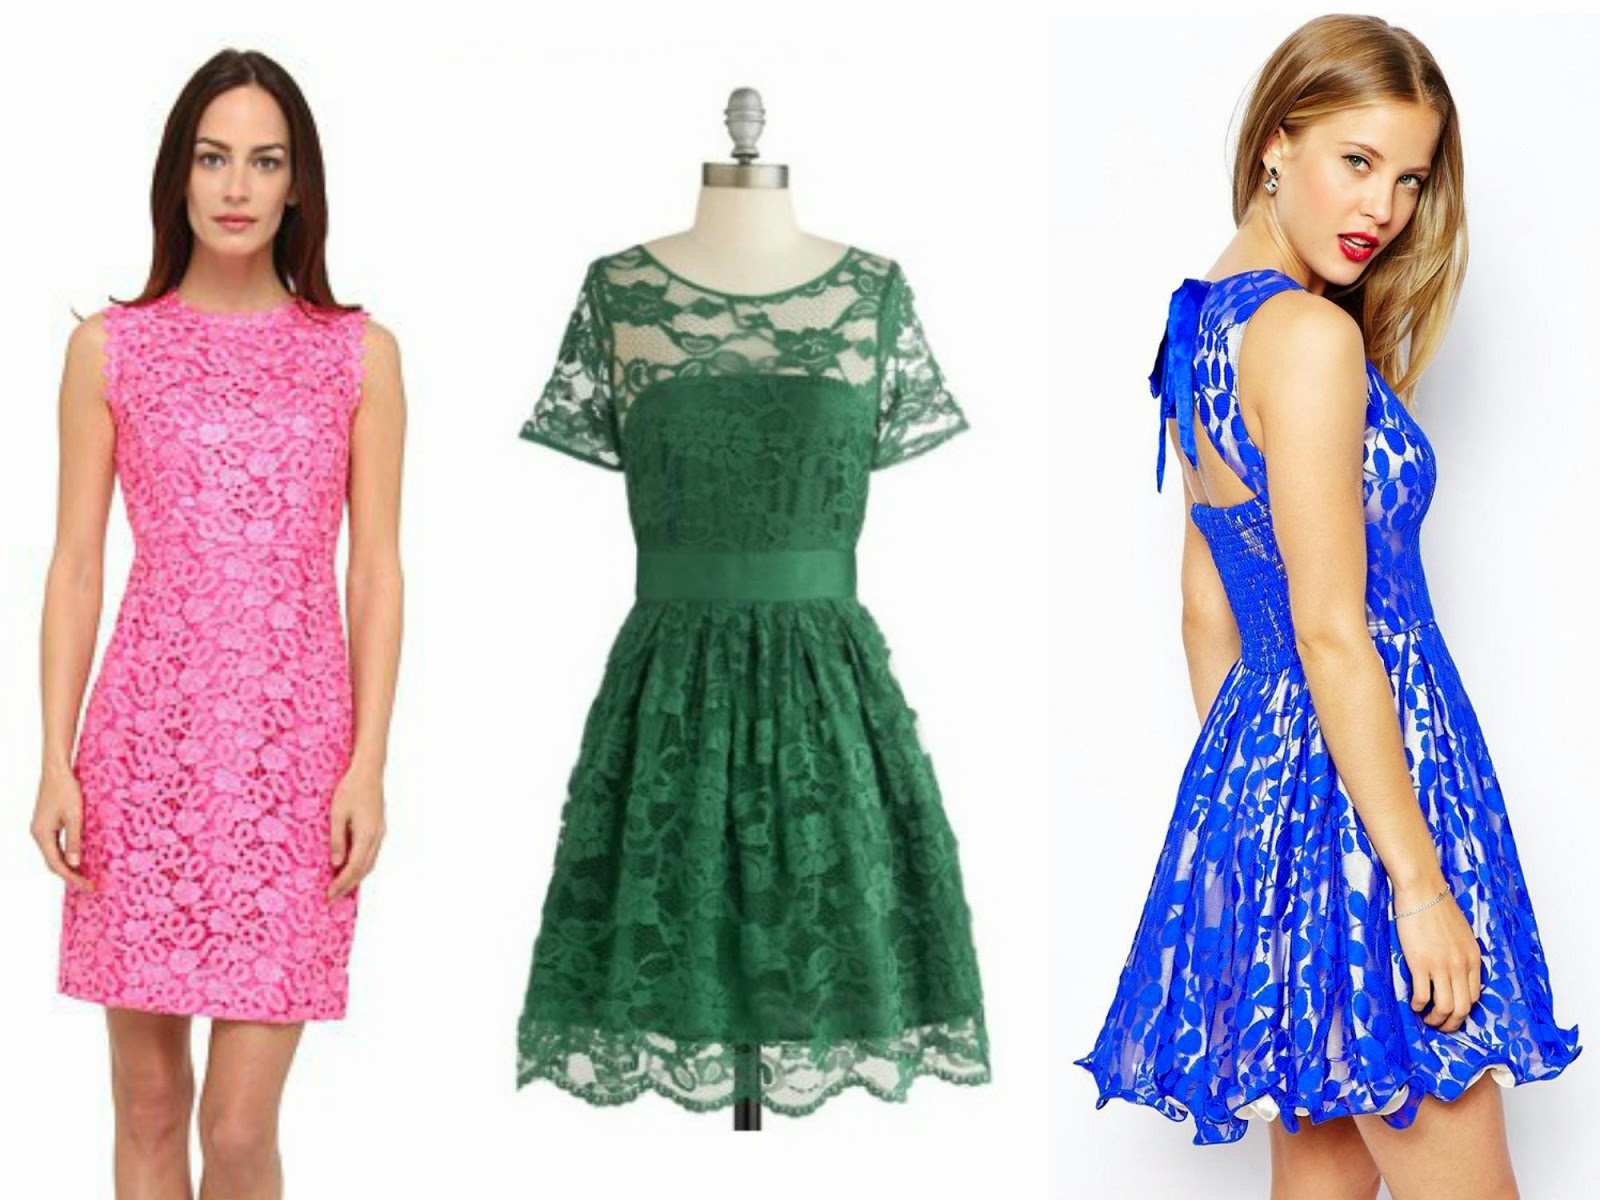 lace dress pink green blue kate spade asos